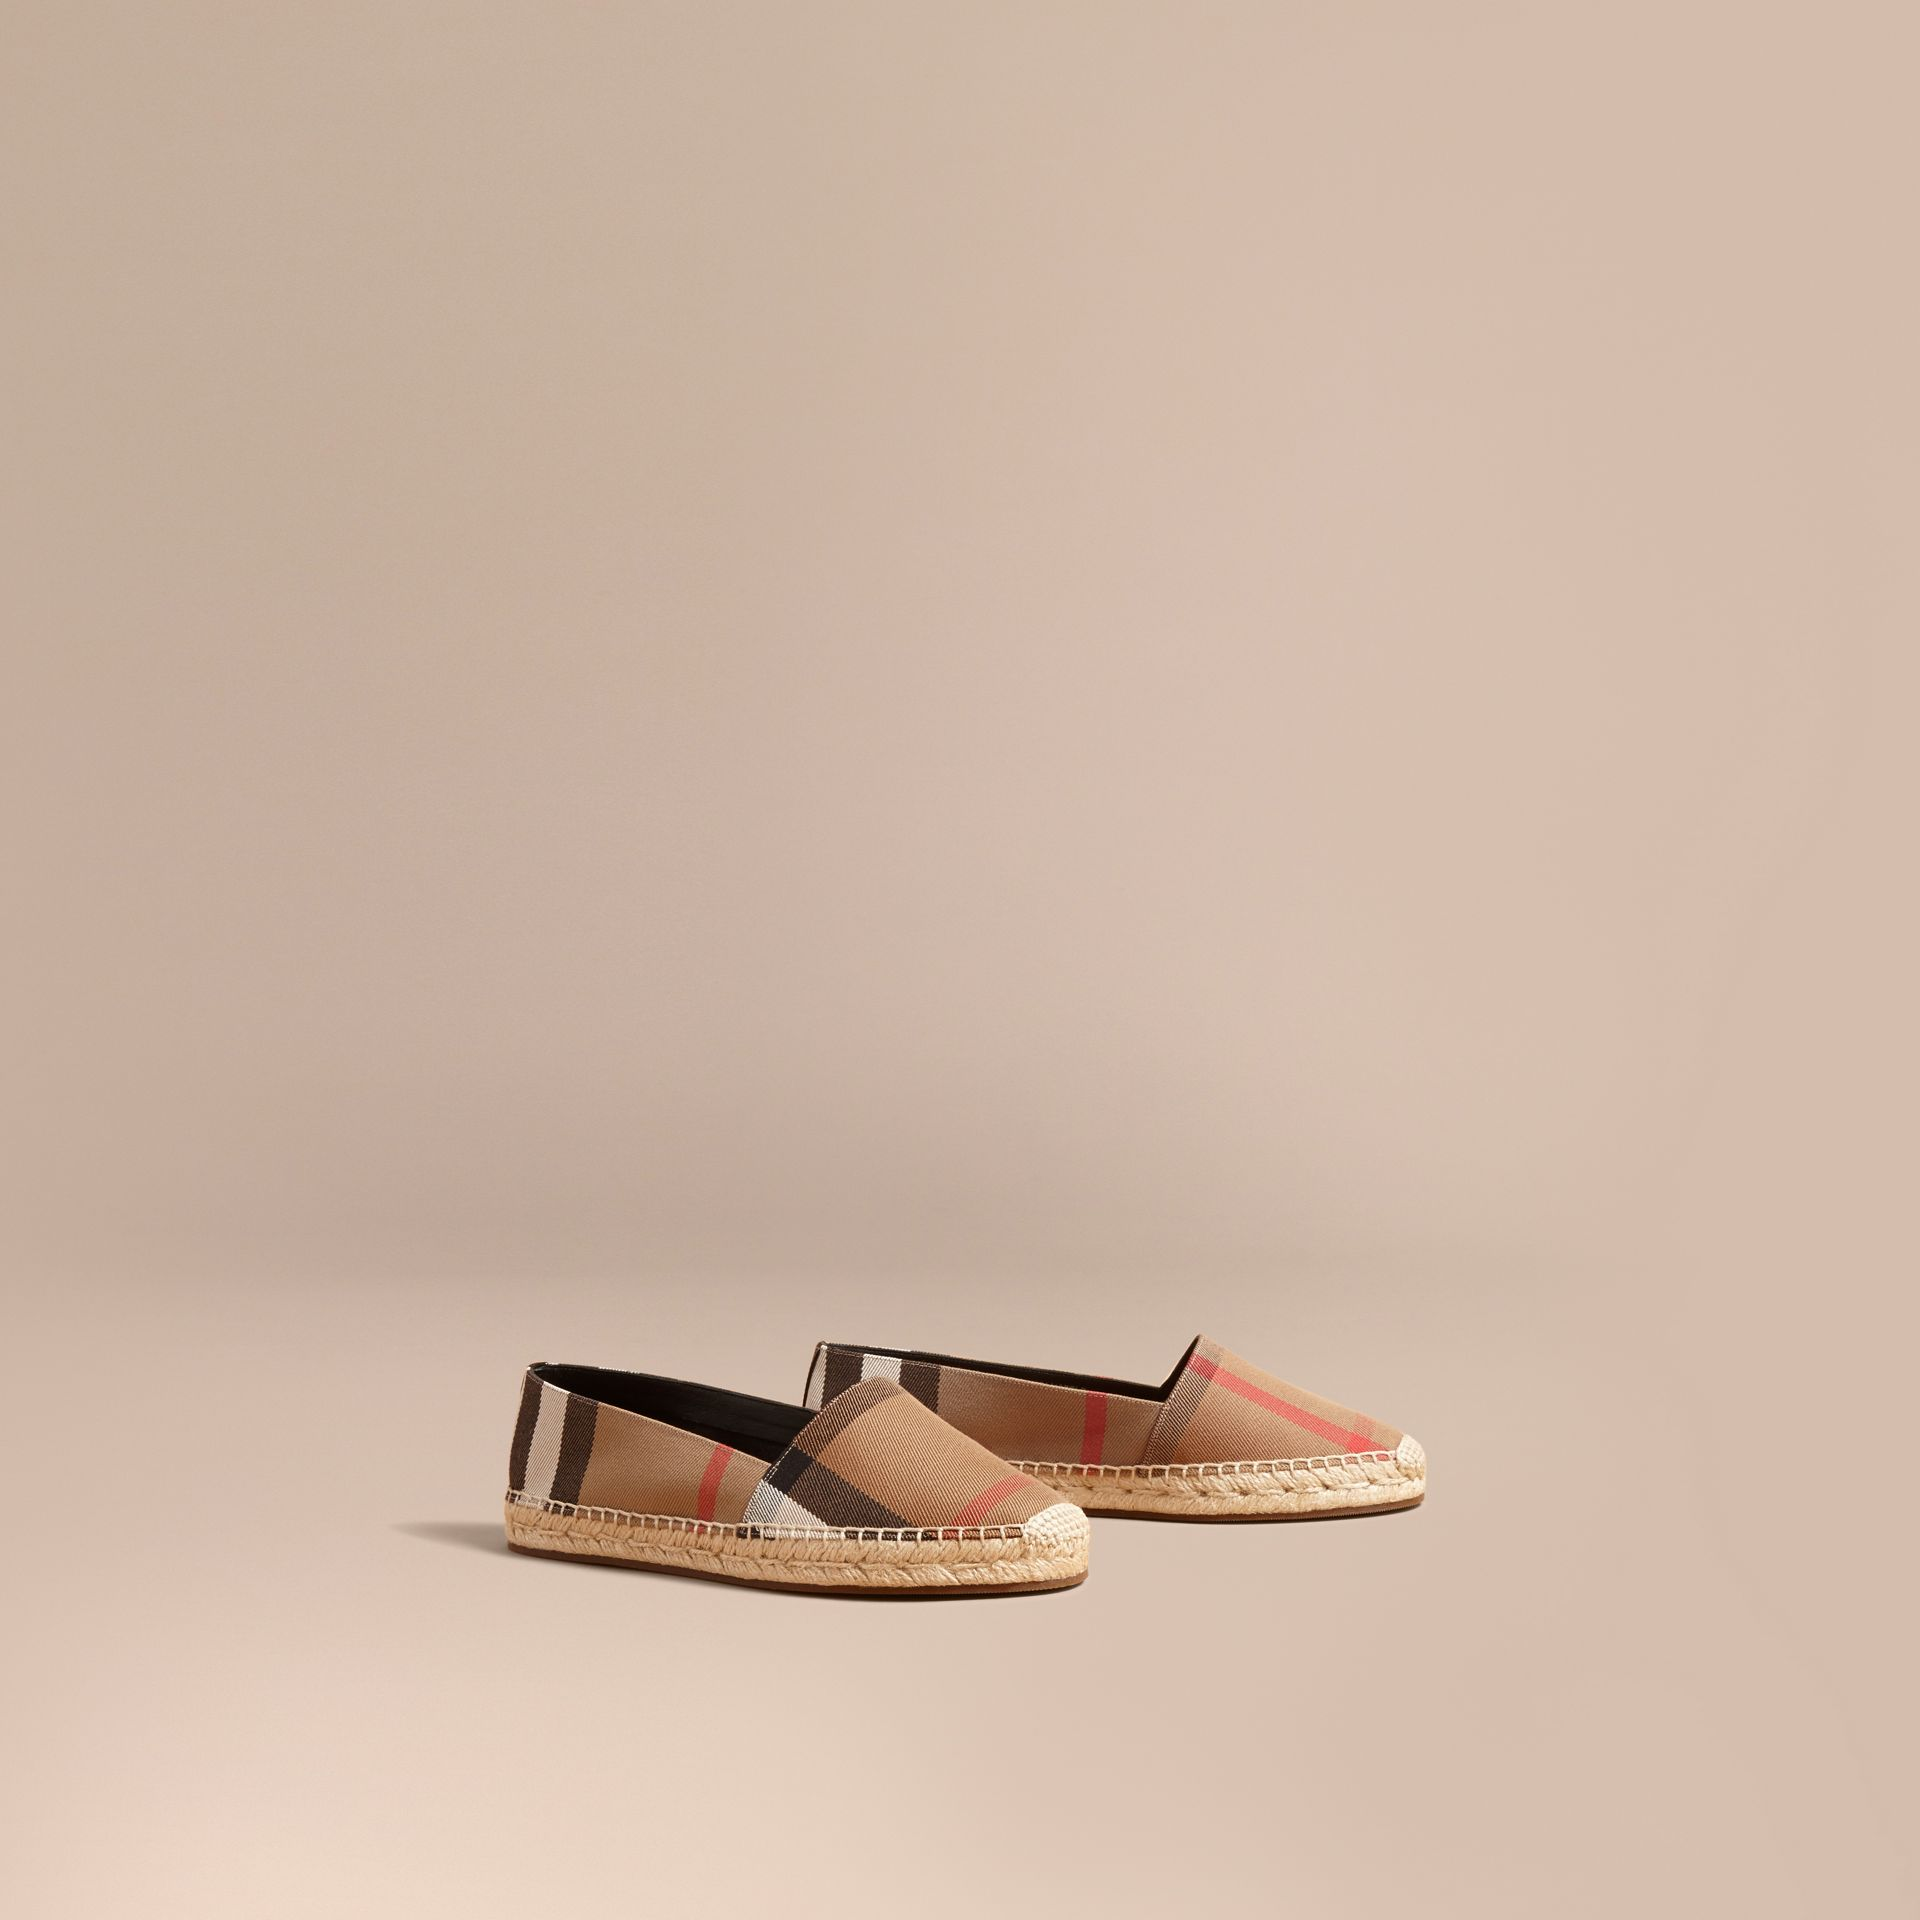 Leather Trim Canvas Check Espadrilles in Classic - Women | Burberry Singapore - gallery image 0